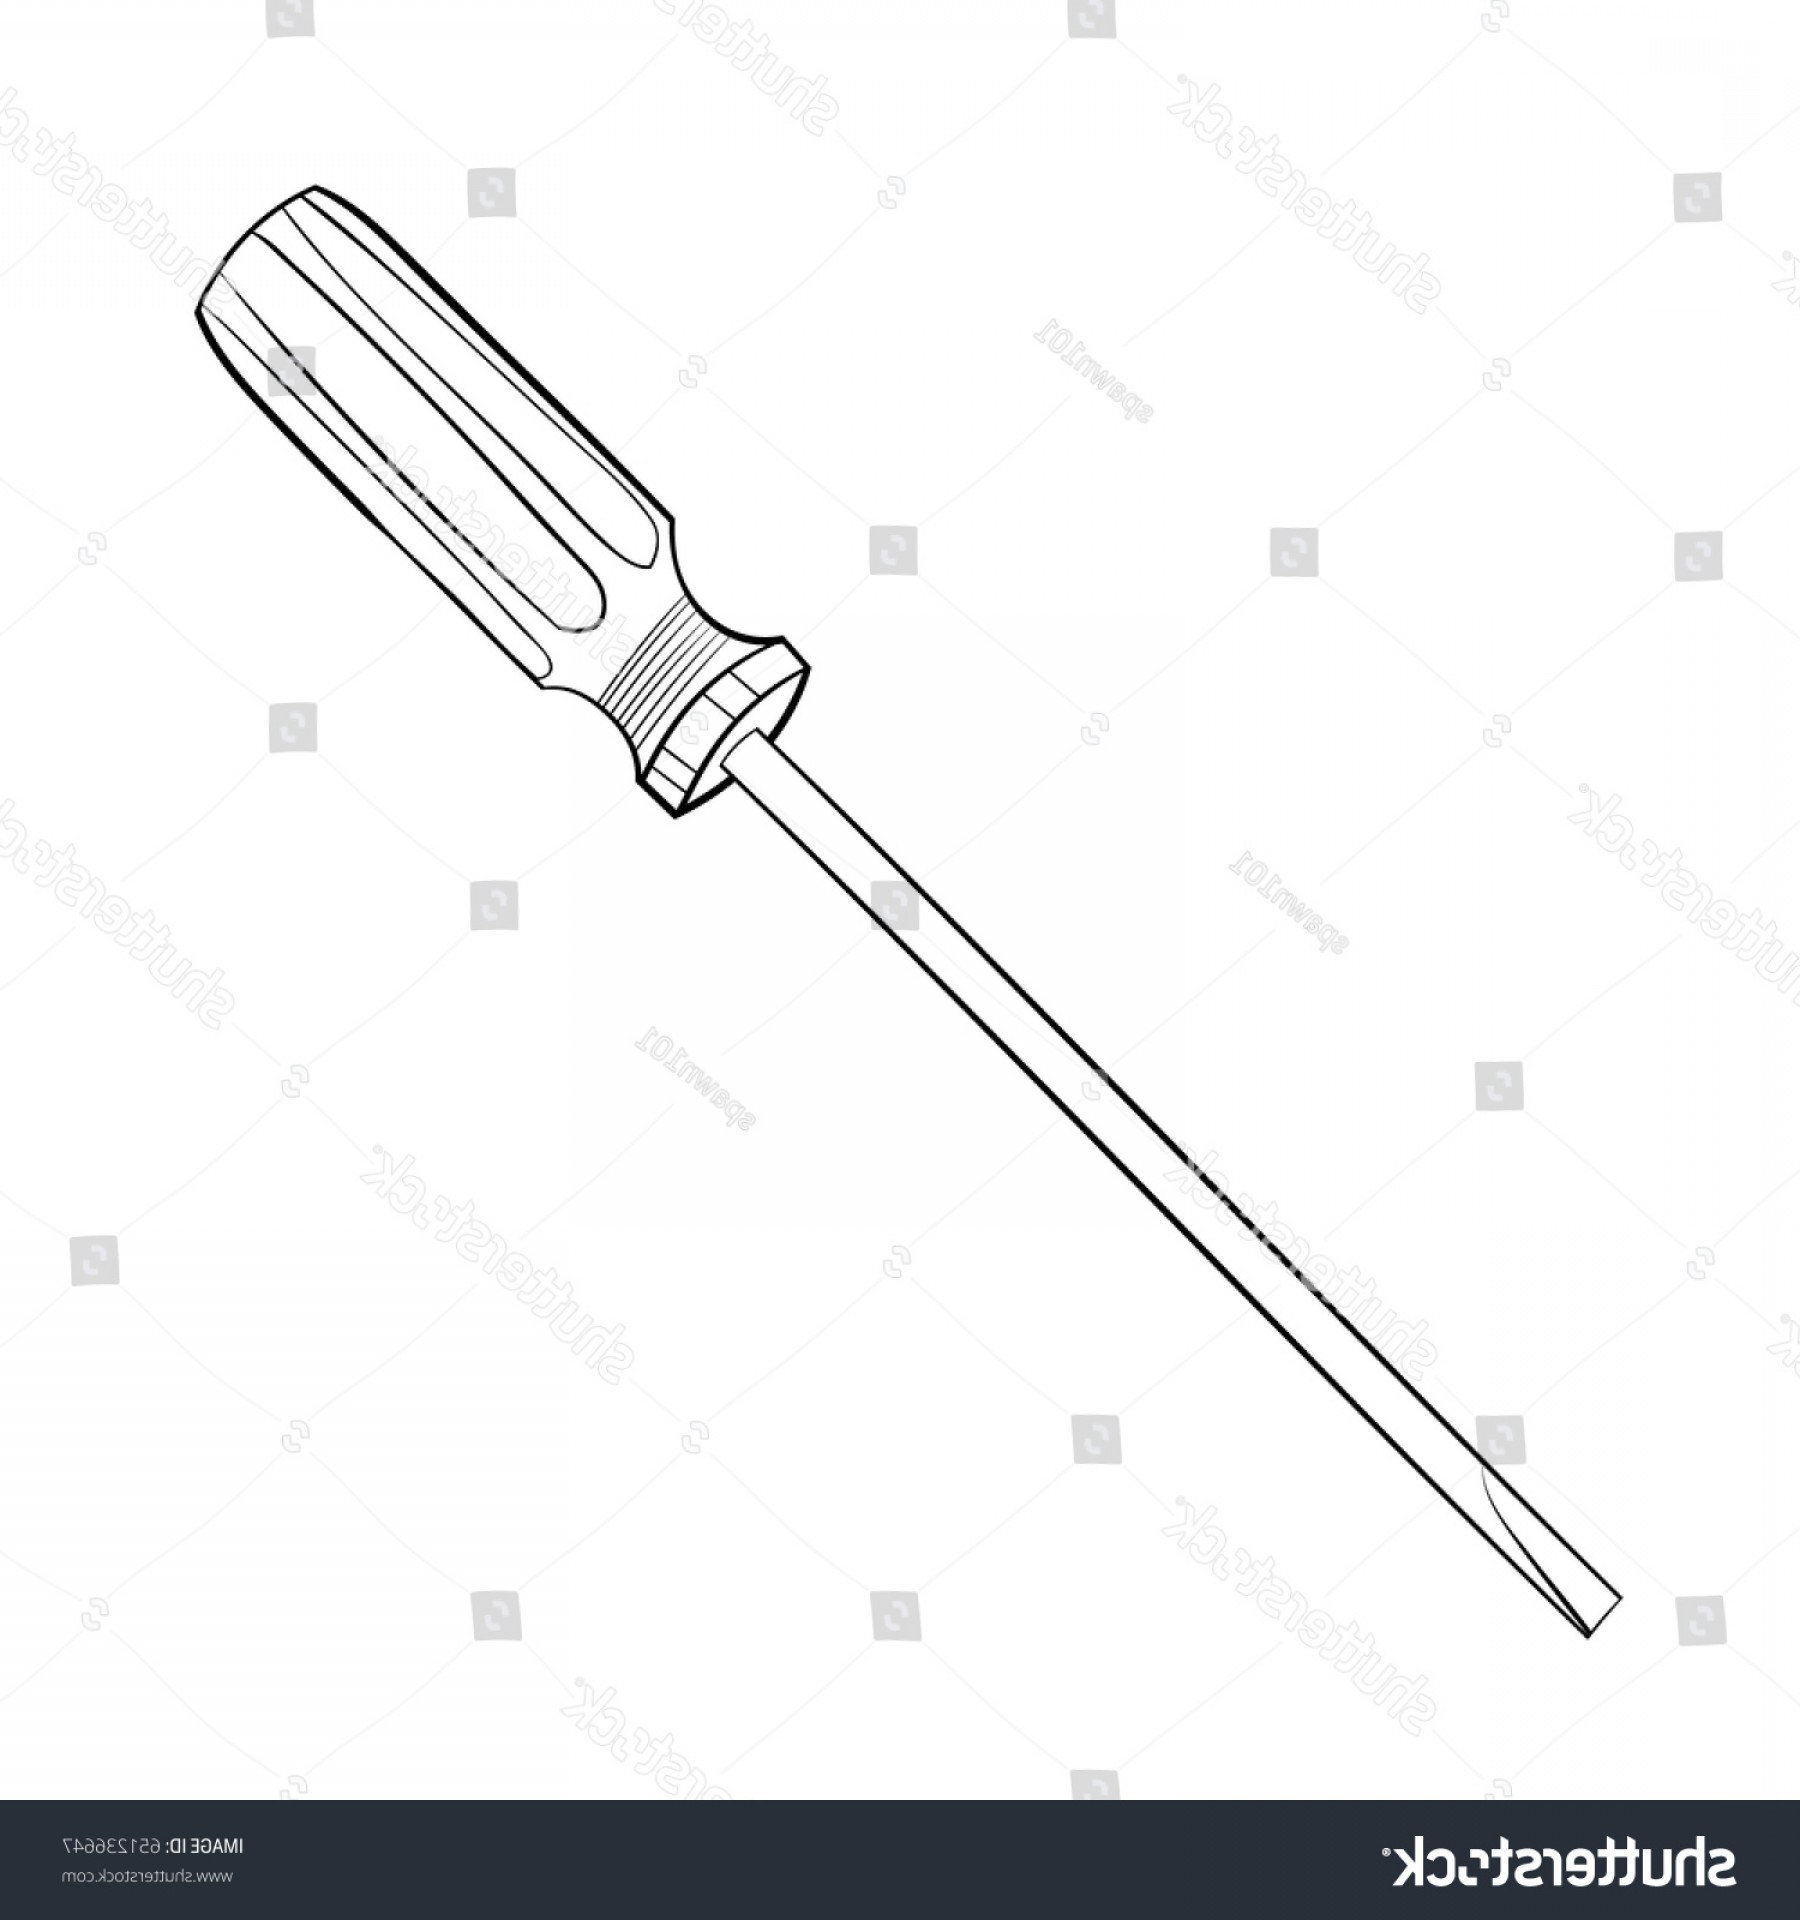 Flat Head Screwdriver Vector: Vector Illustration Flat Head Screwdriver Black